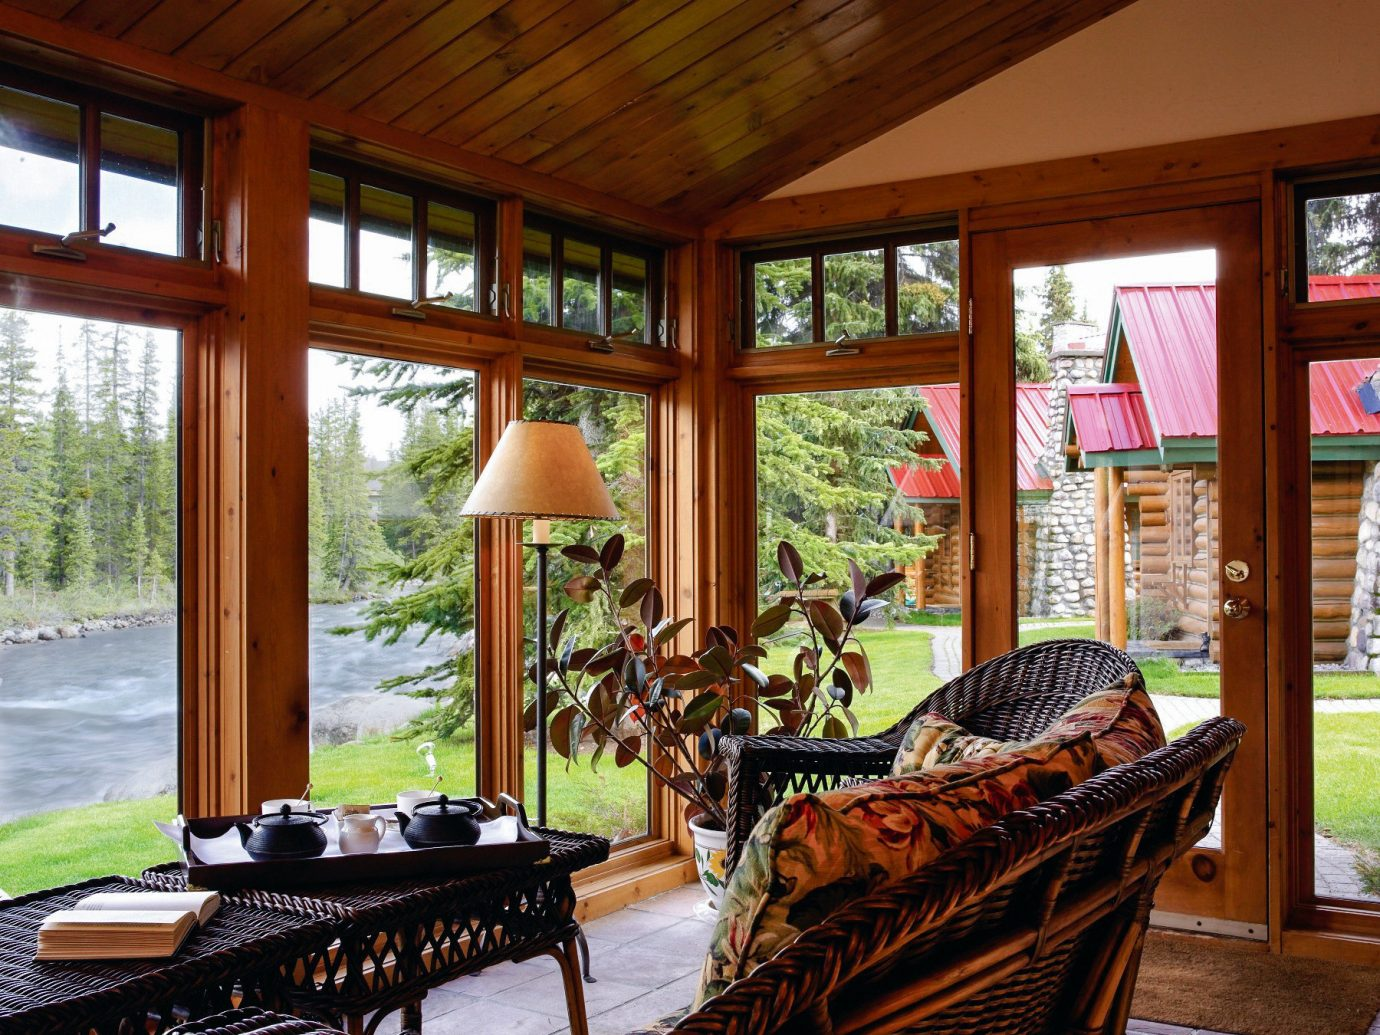 Alberta Boutique Hotels Canada Design Hotels Patio Rustic Scenic views indoor window ceiling room Living living room porch home interior design furniture real estate outdoor structure wood house estate door area several